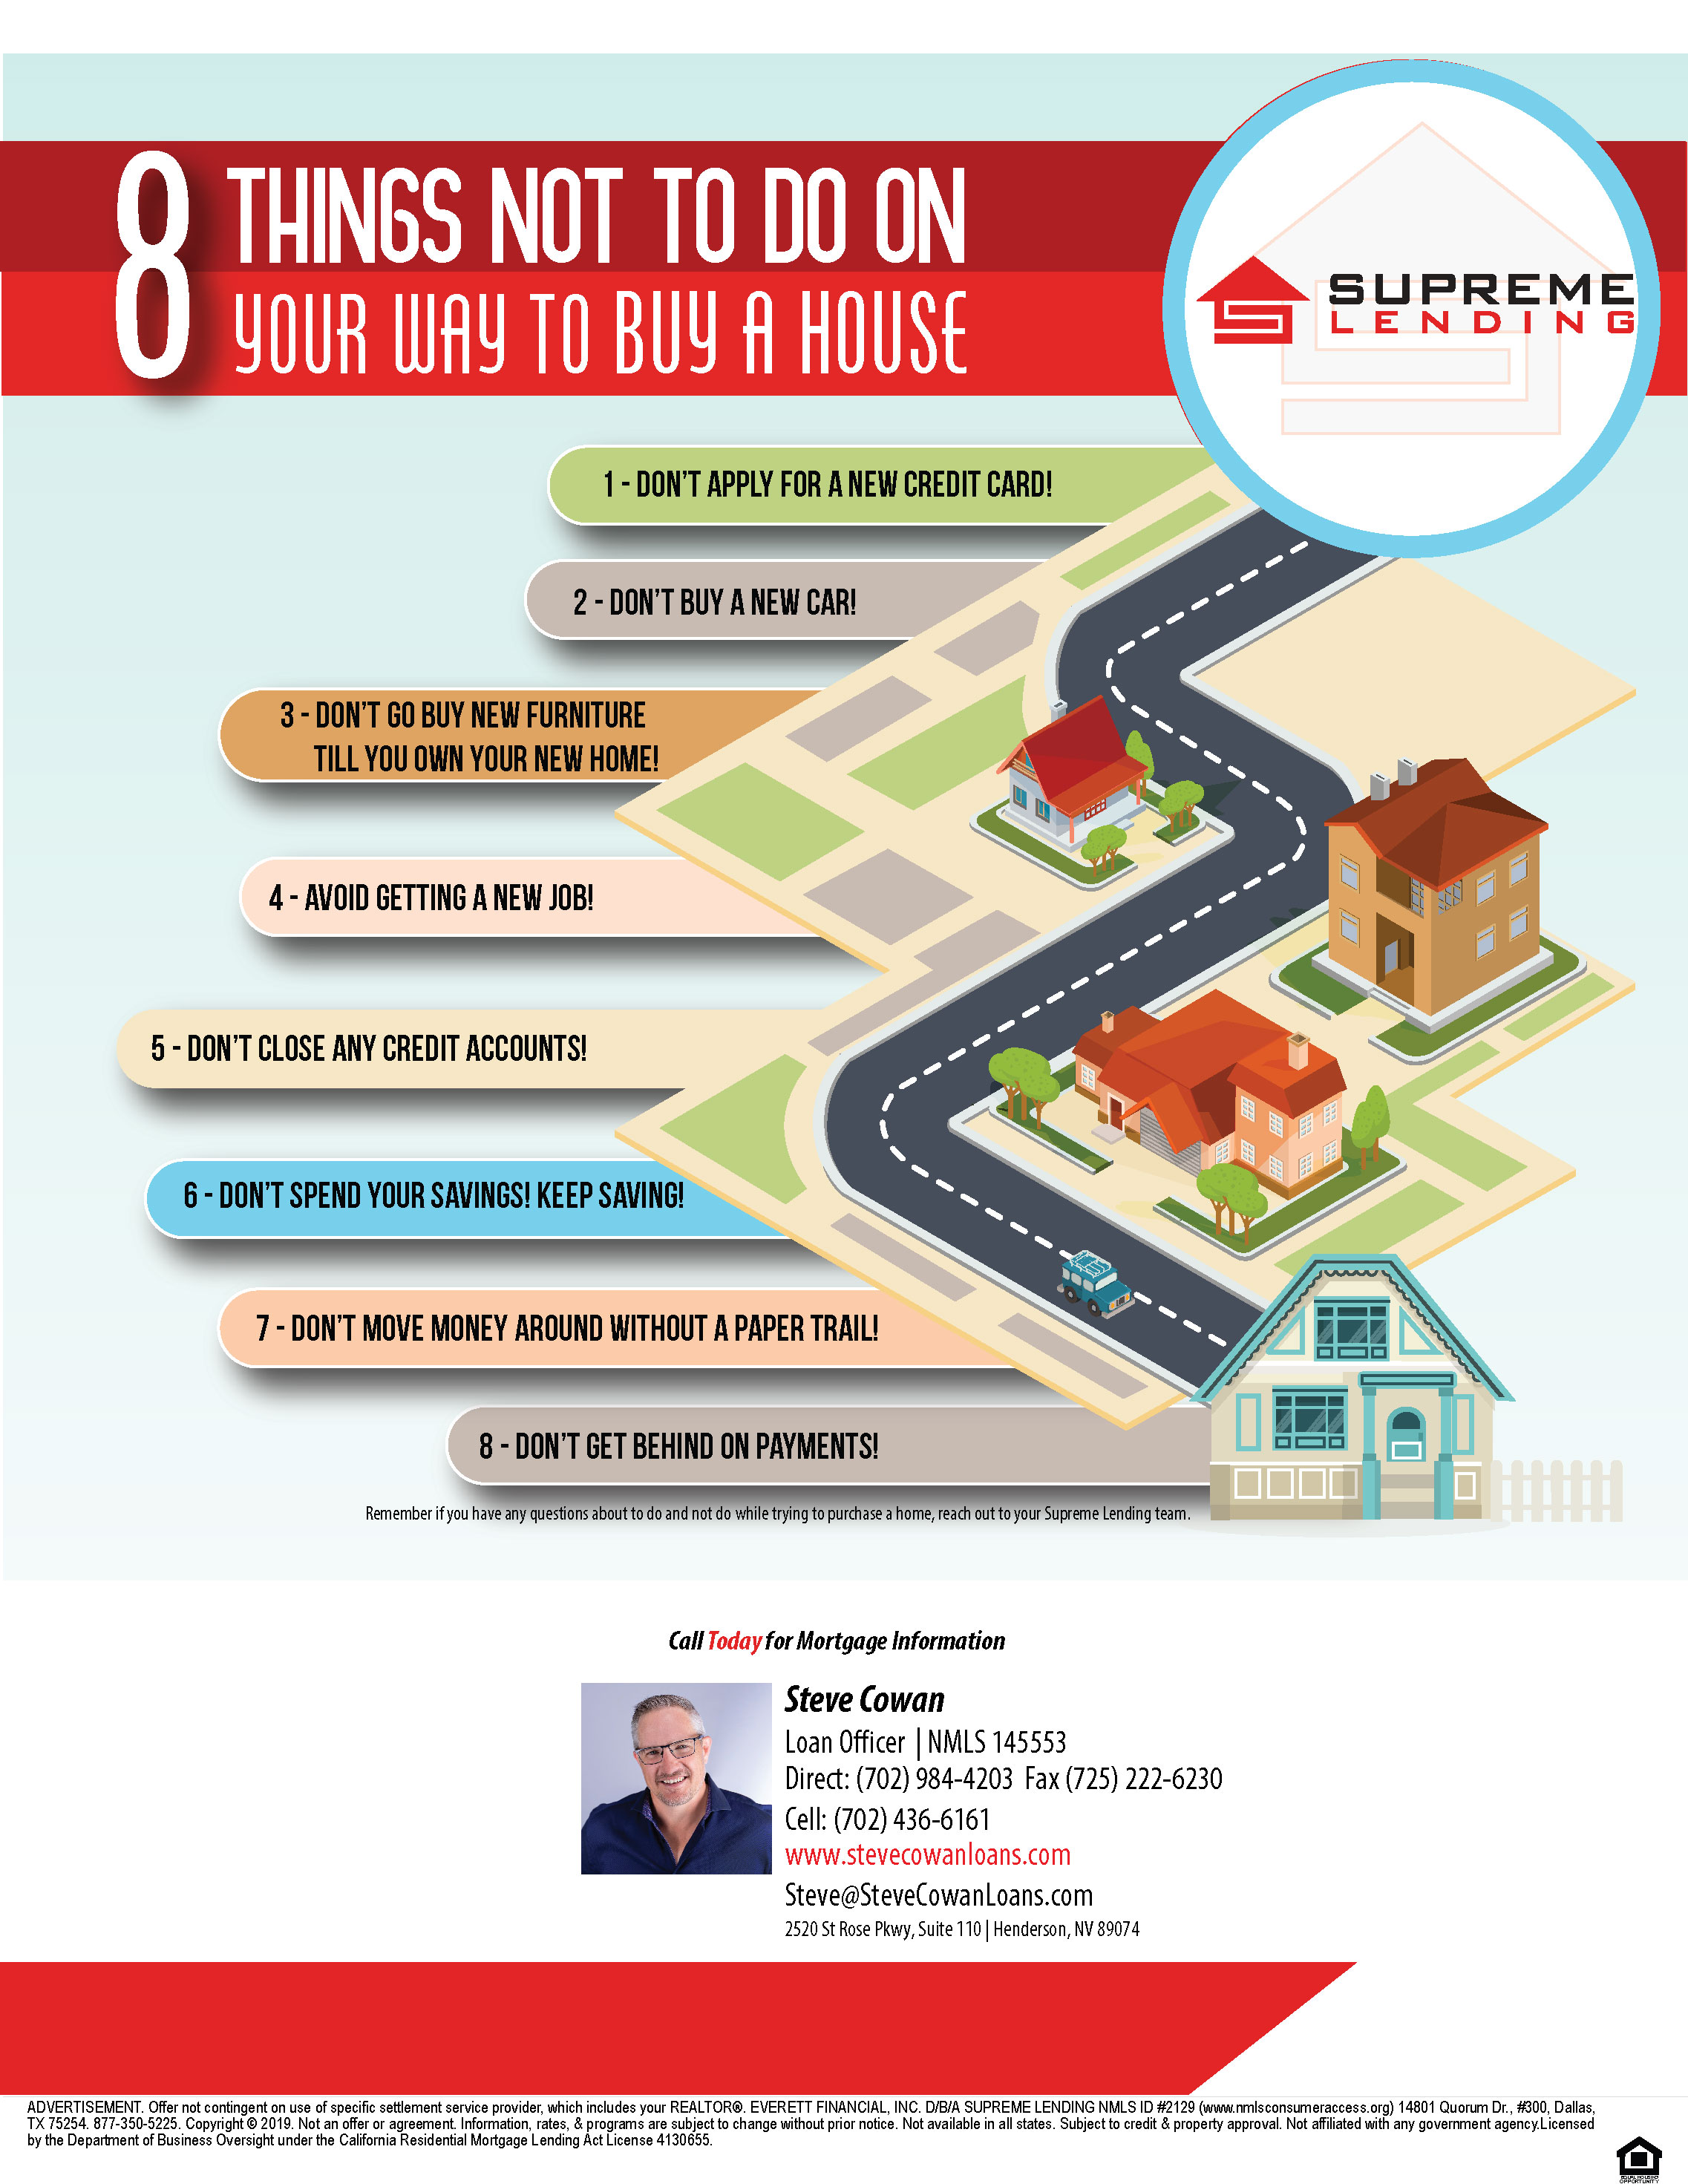 8-Things-Not-to-do-on-your-way-to-buy-a-house.jpg